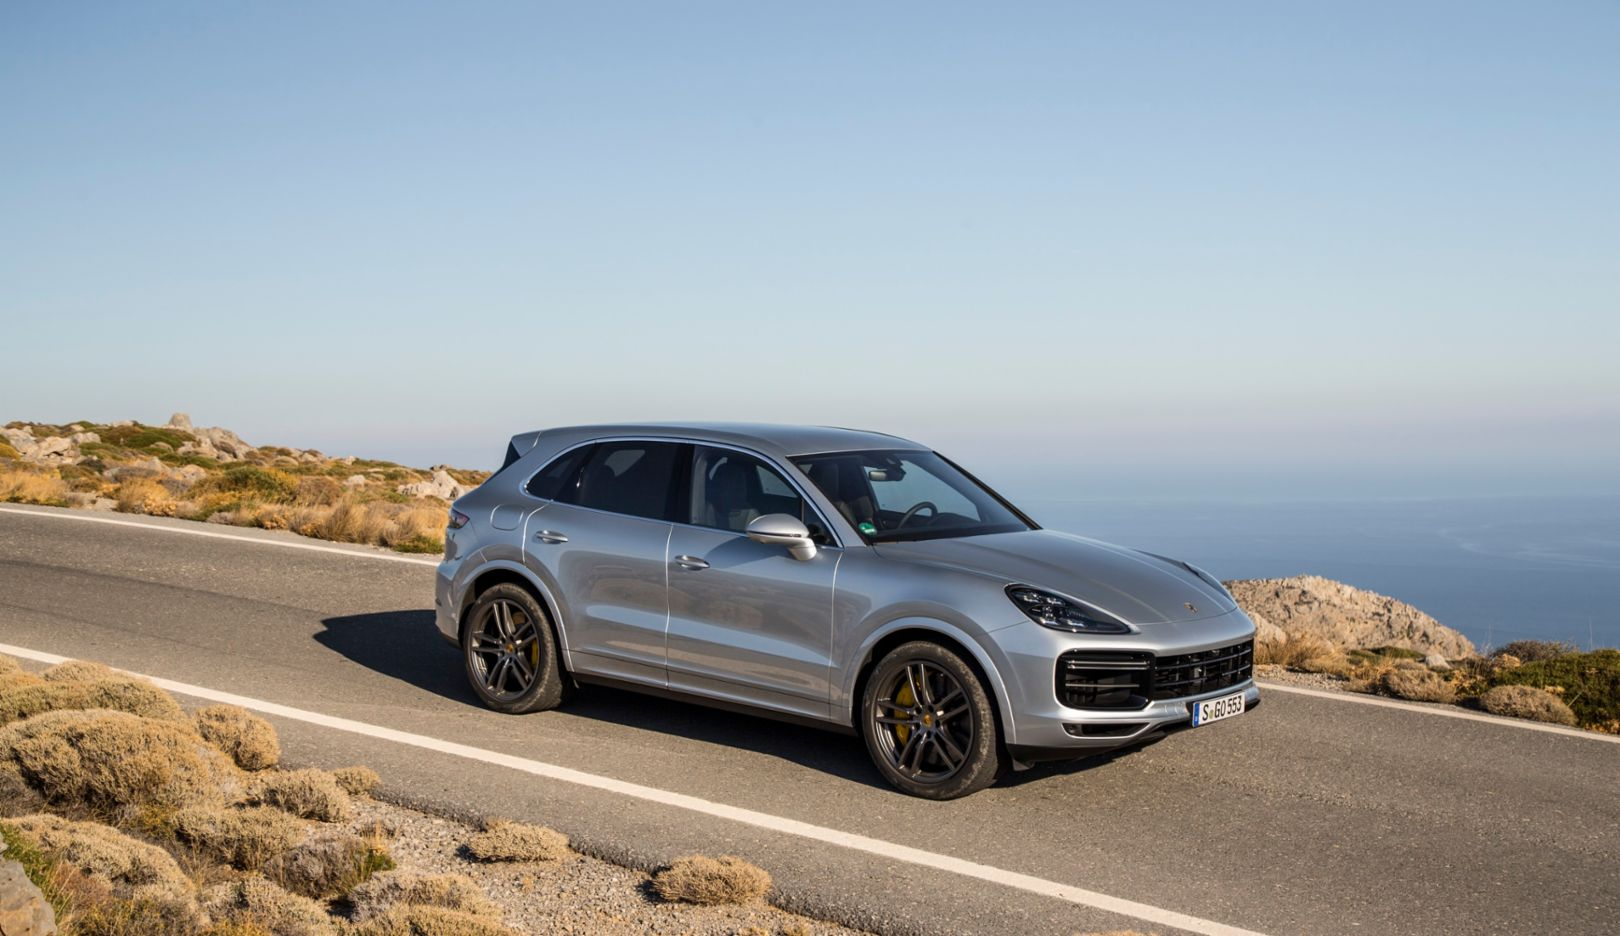 Sales of the redesigned Cayenne were nine times higher in August compared to a year earlier, 2019, PCNA